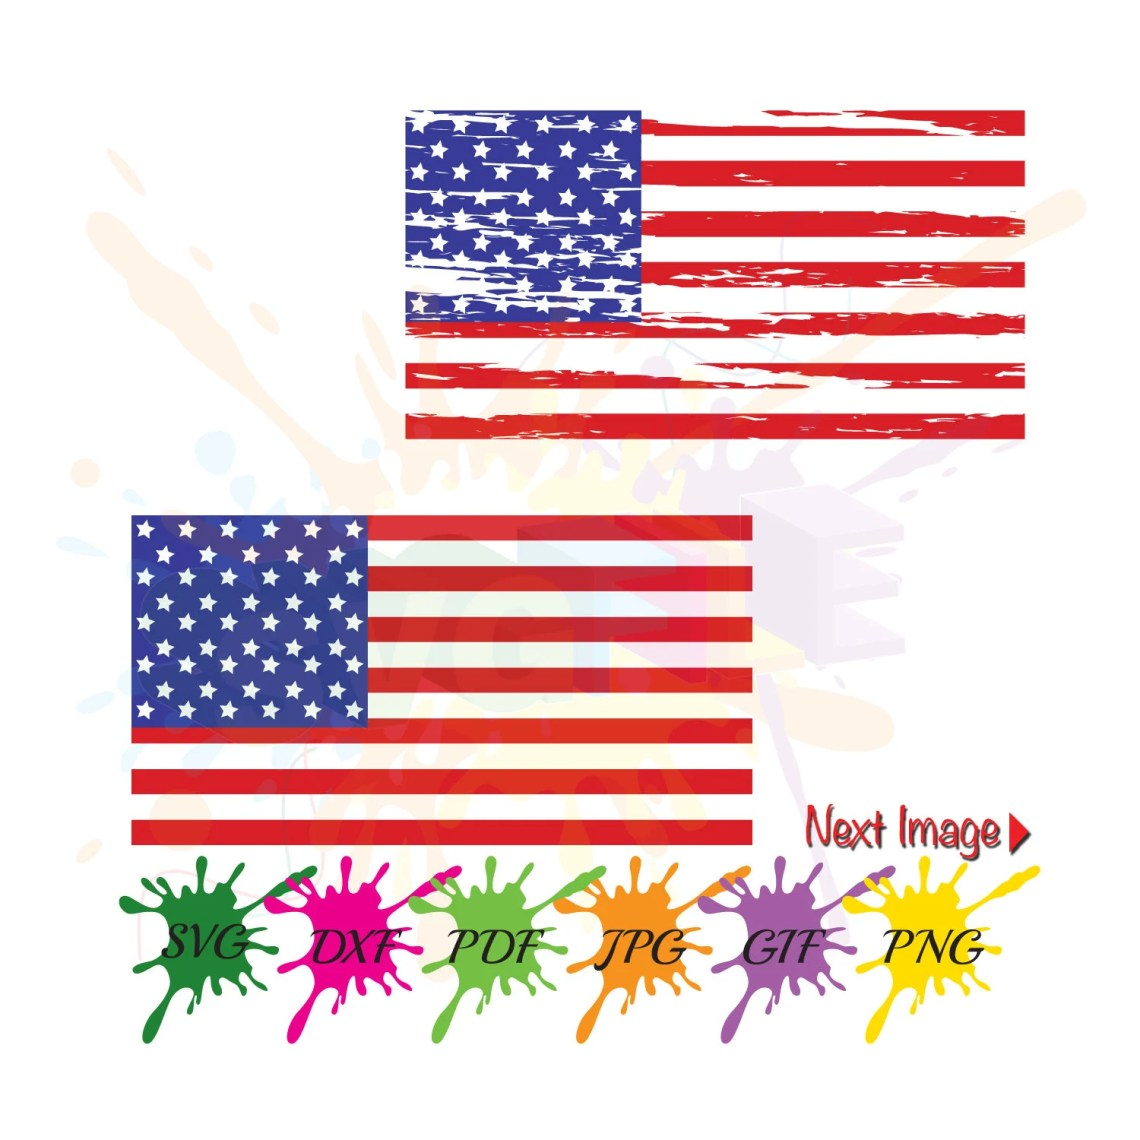 Download Distressed American Flag SVG Files for Cutting Cricut Designs